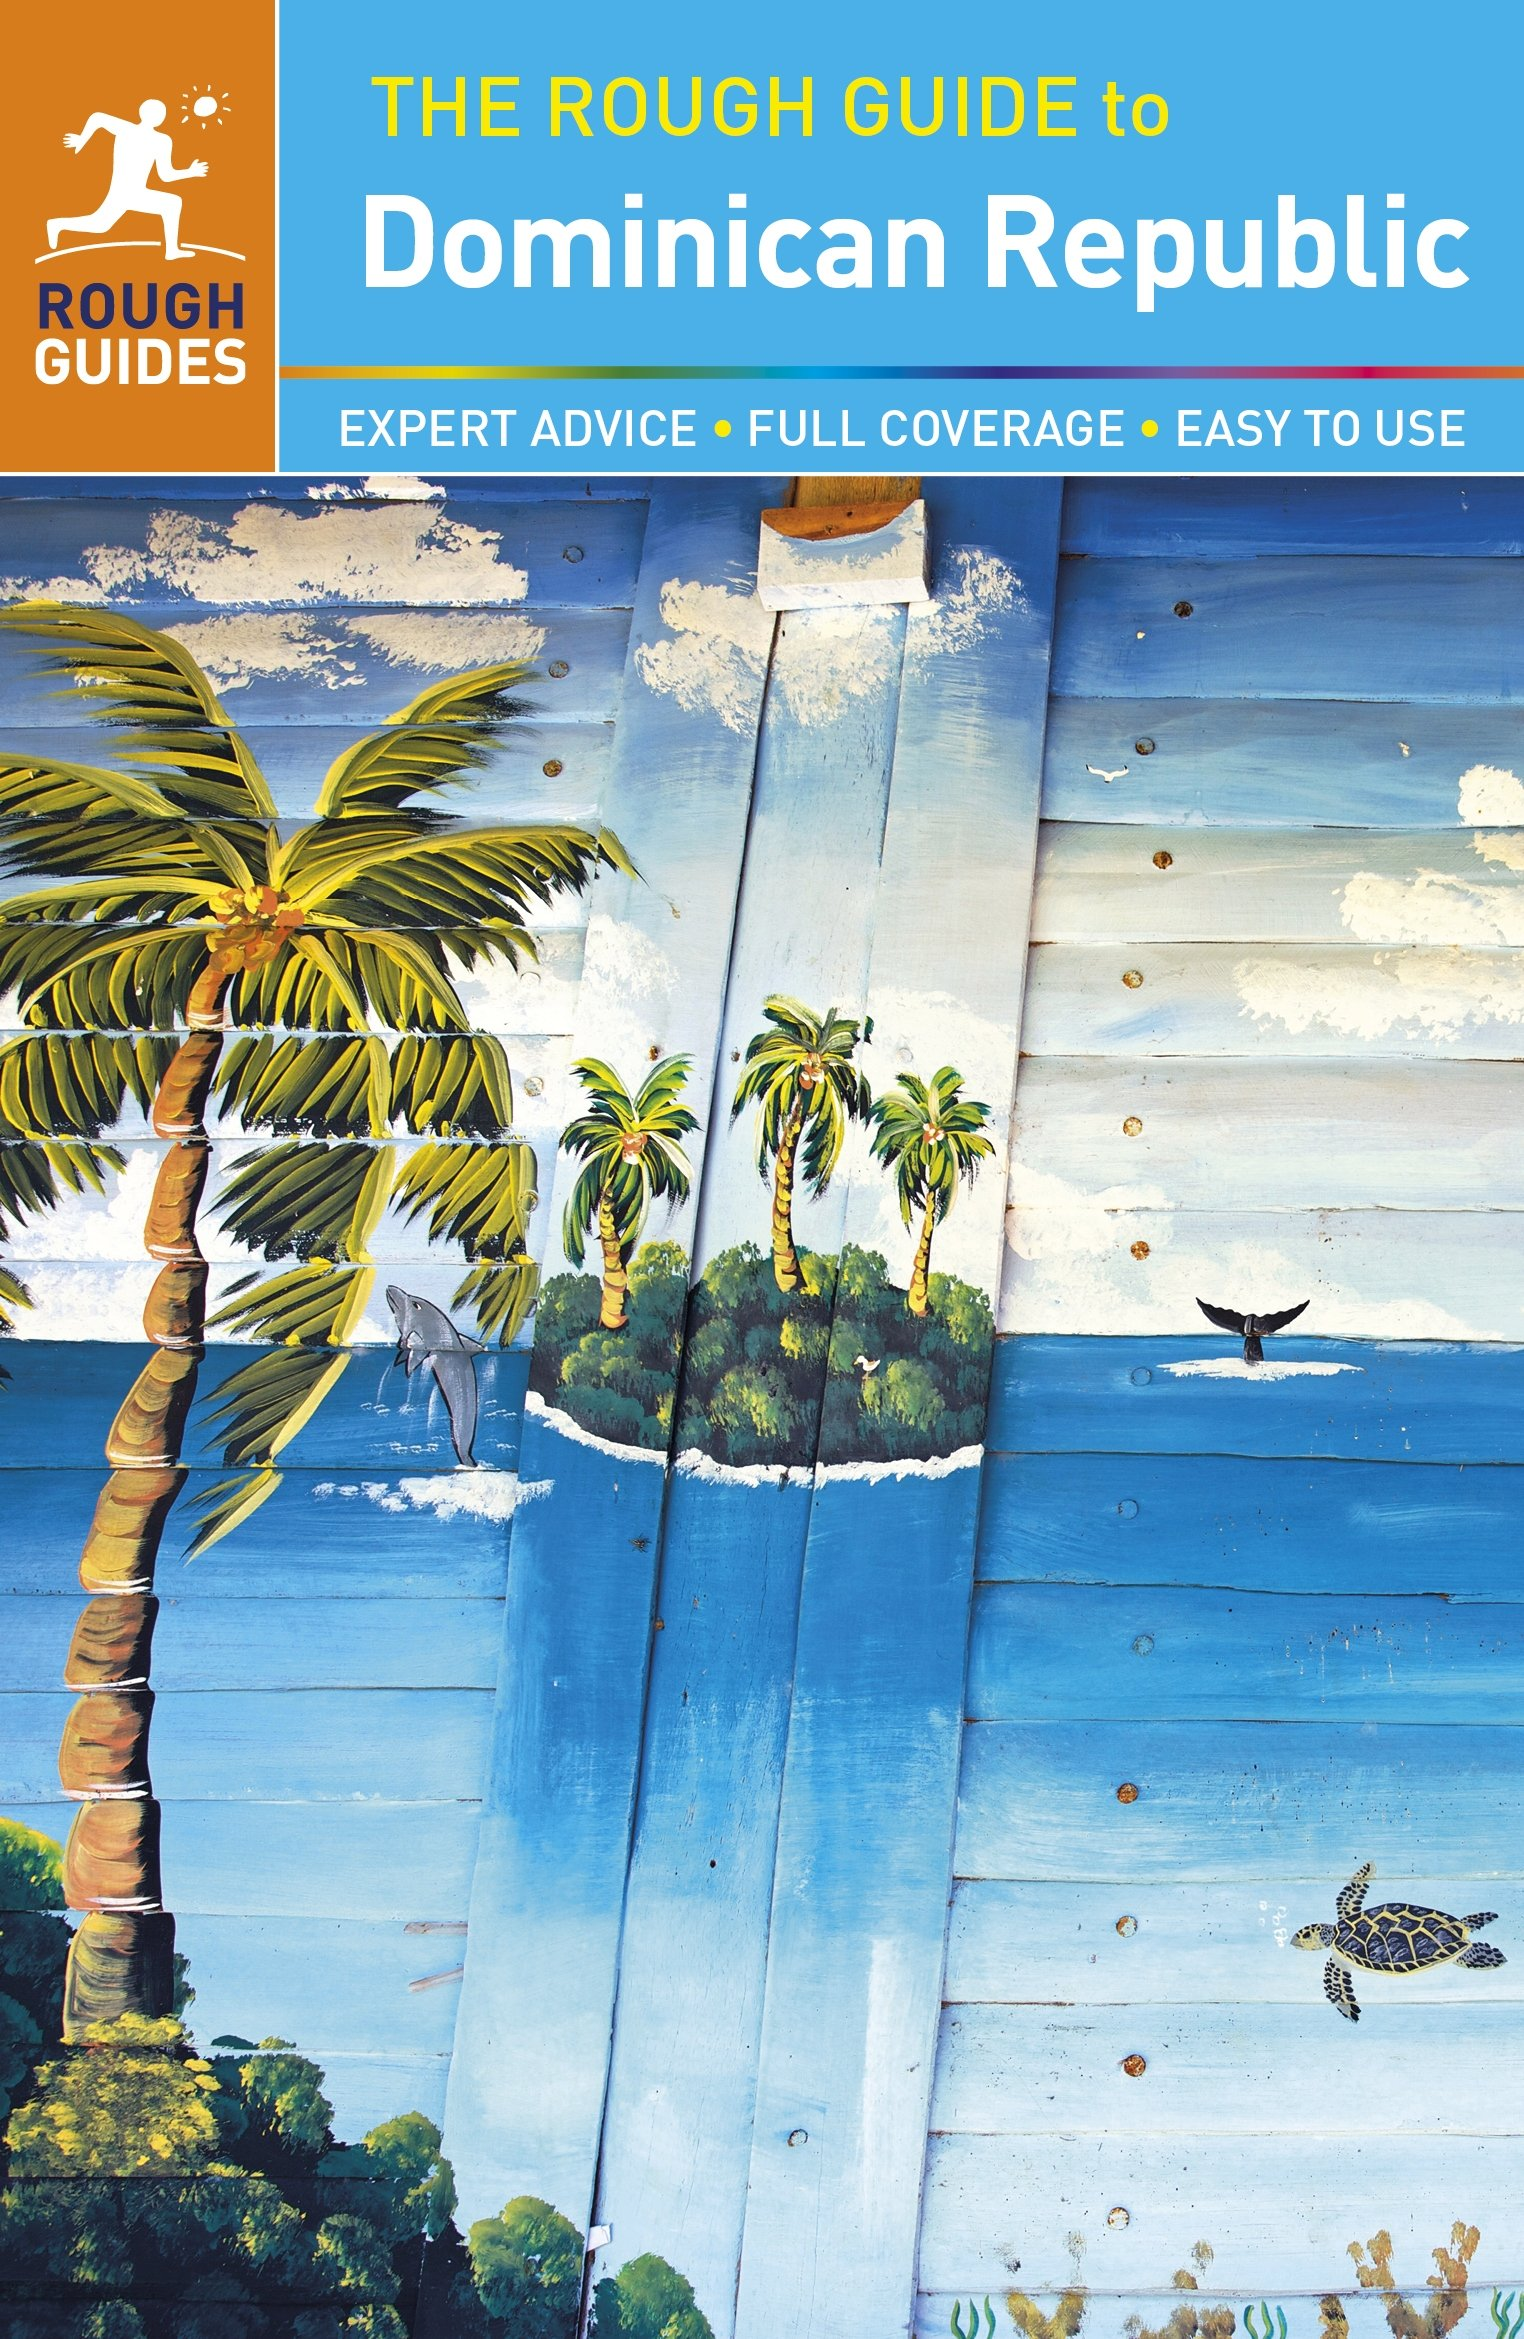 The Rough Guide to the Dominican Republic Paperback – November 3, 2014 Rough Guides 1409353125 Central America Caribbean & West Indies